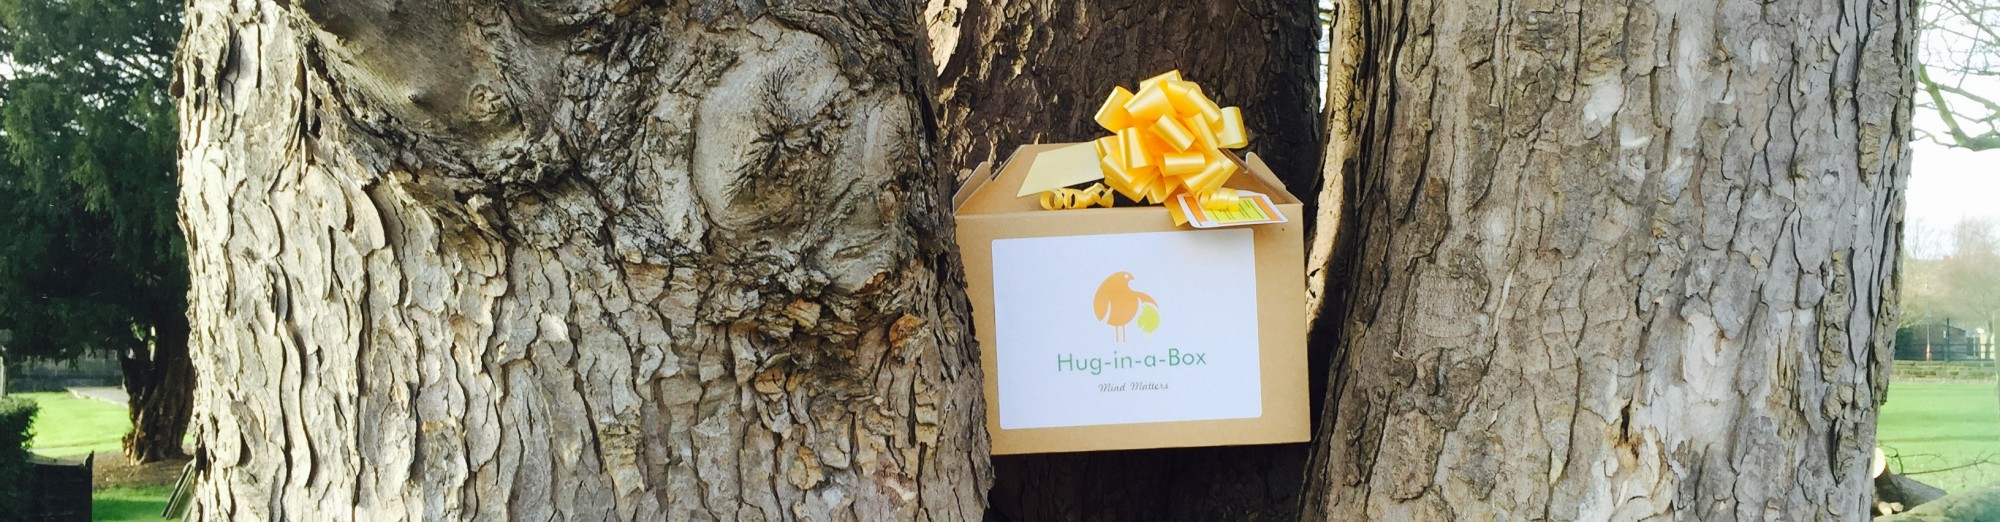 Hug-in-a-Box©